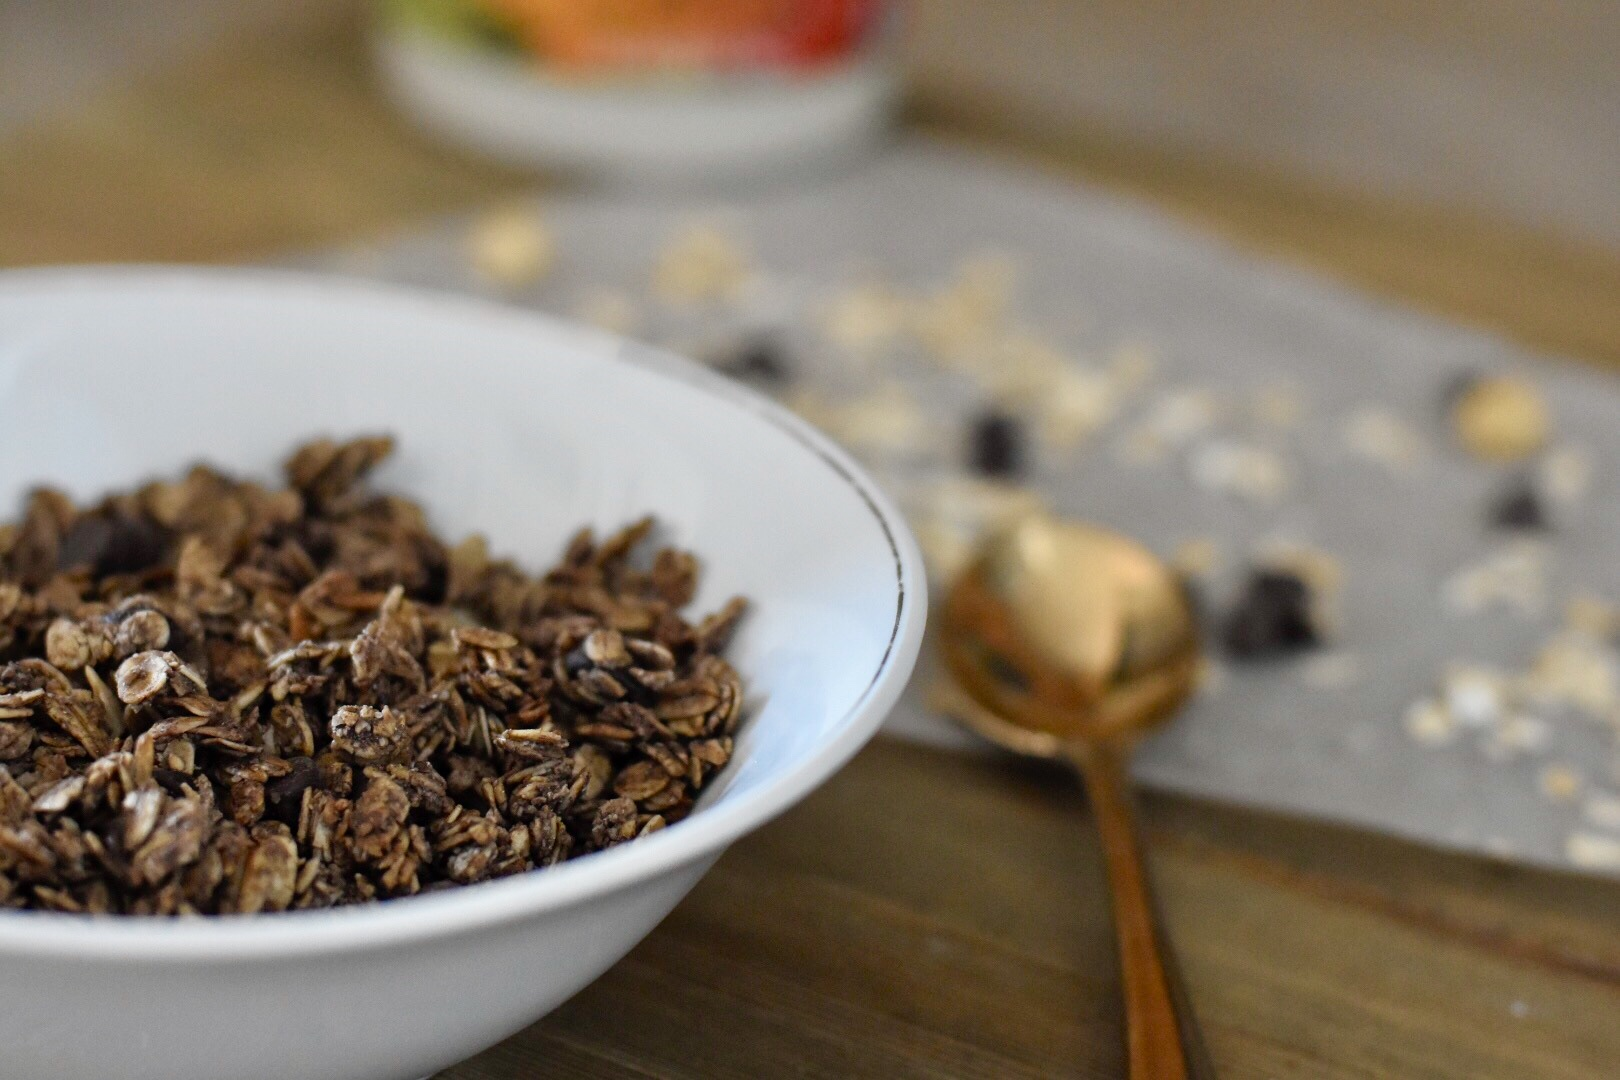 Chocolate Granola / Chocolate lovers granola / Nutella lovers granola